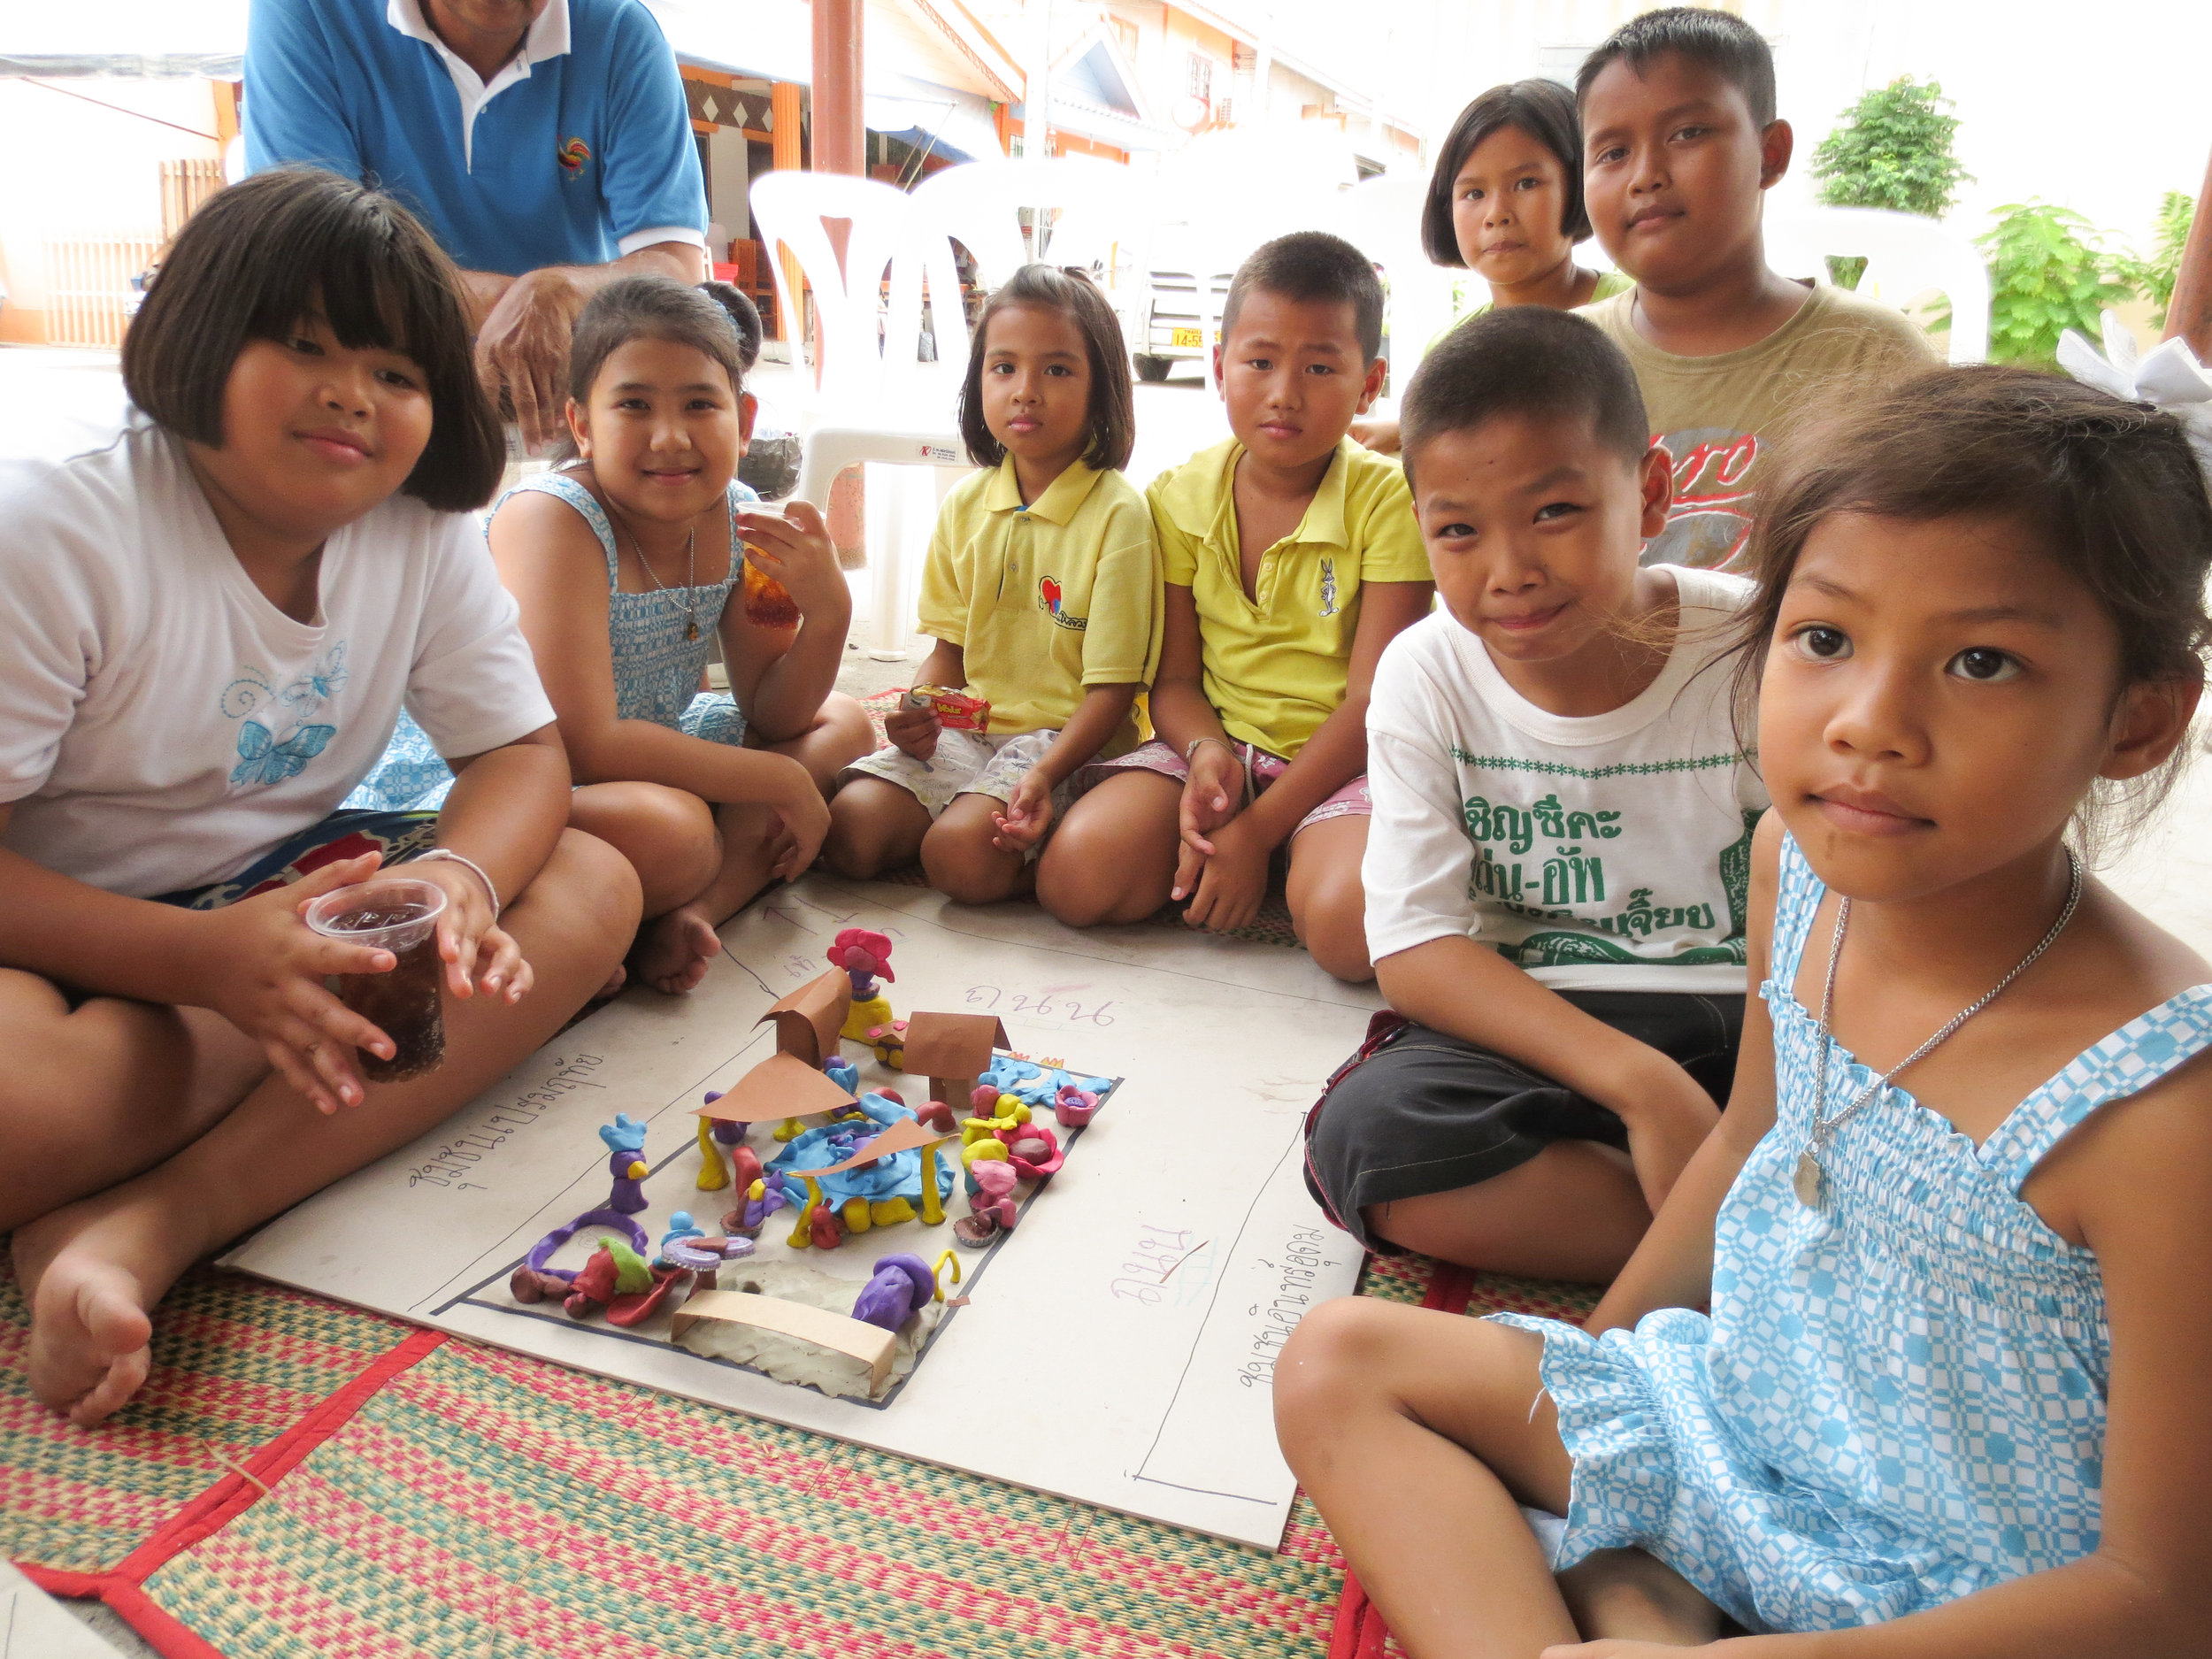 Including children in participatory design projects